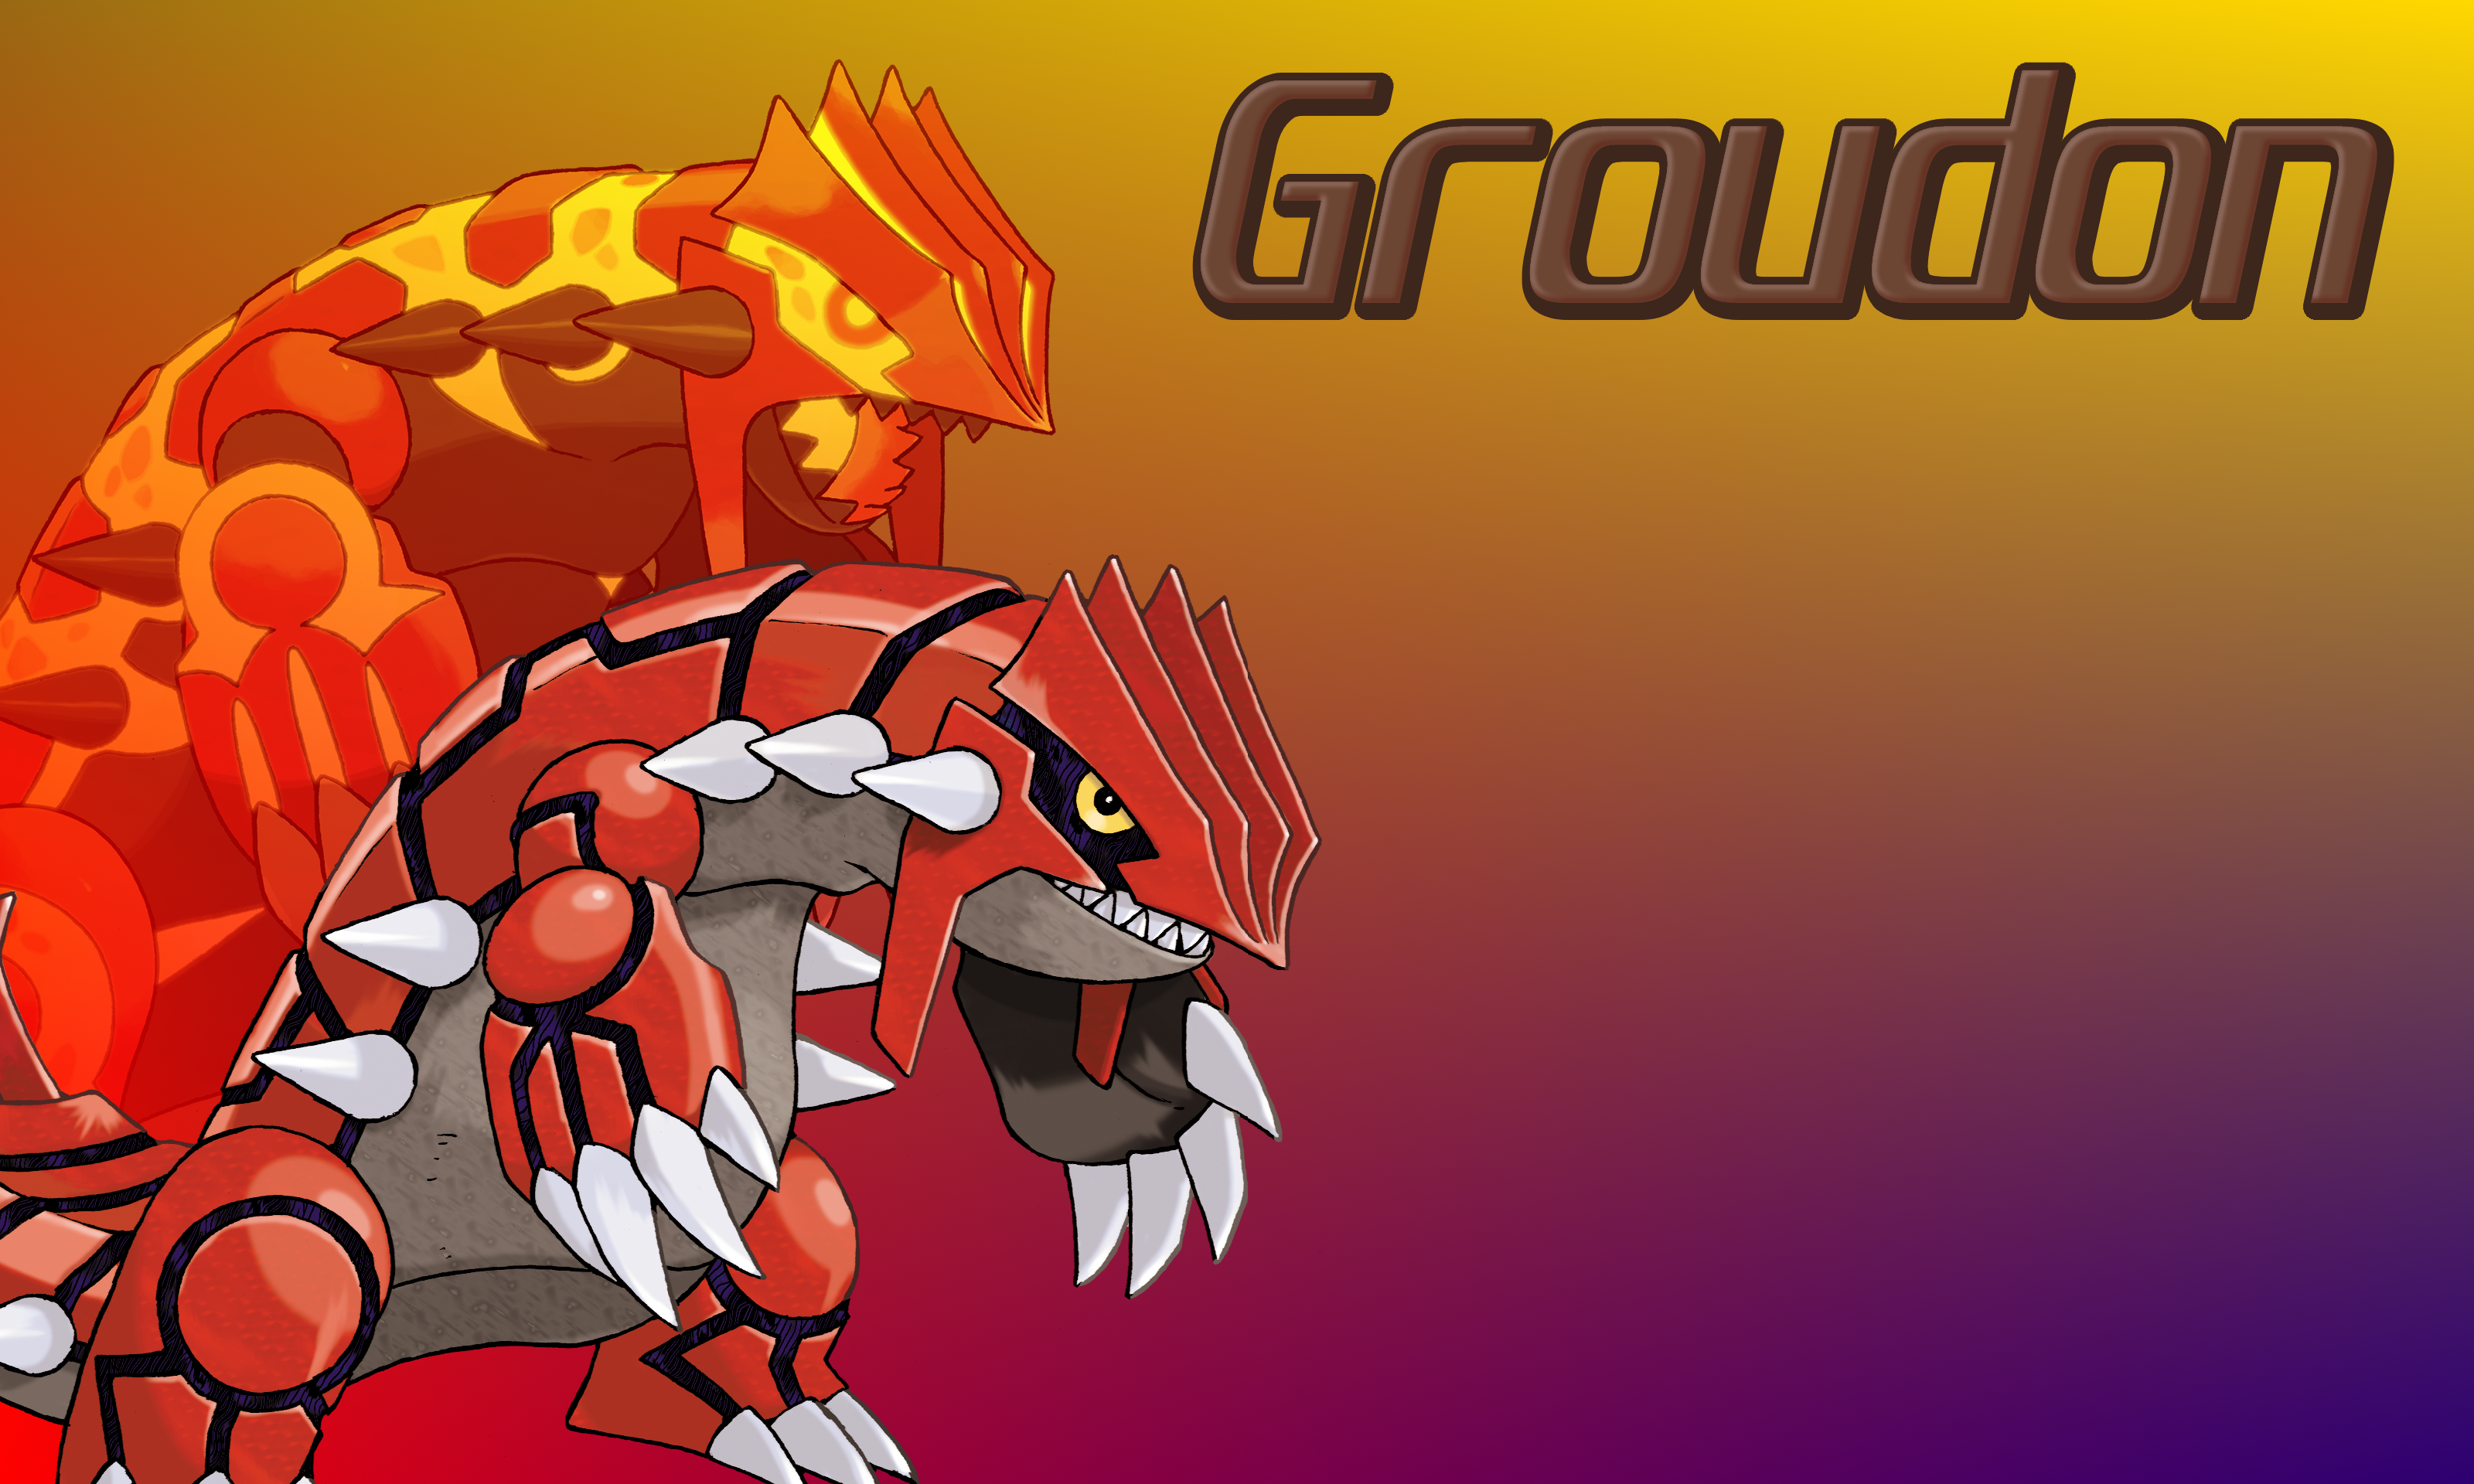 Groudon Wallpaper HD | Full HD Pictures